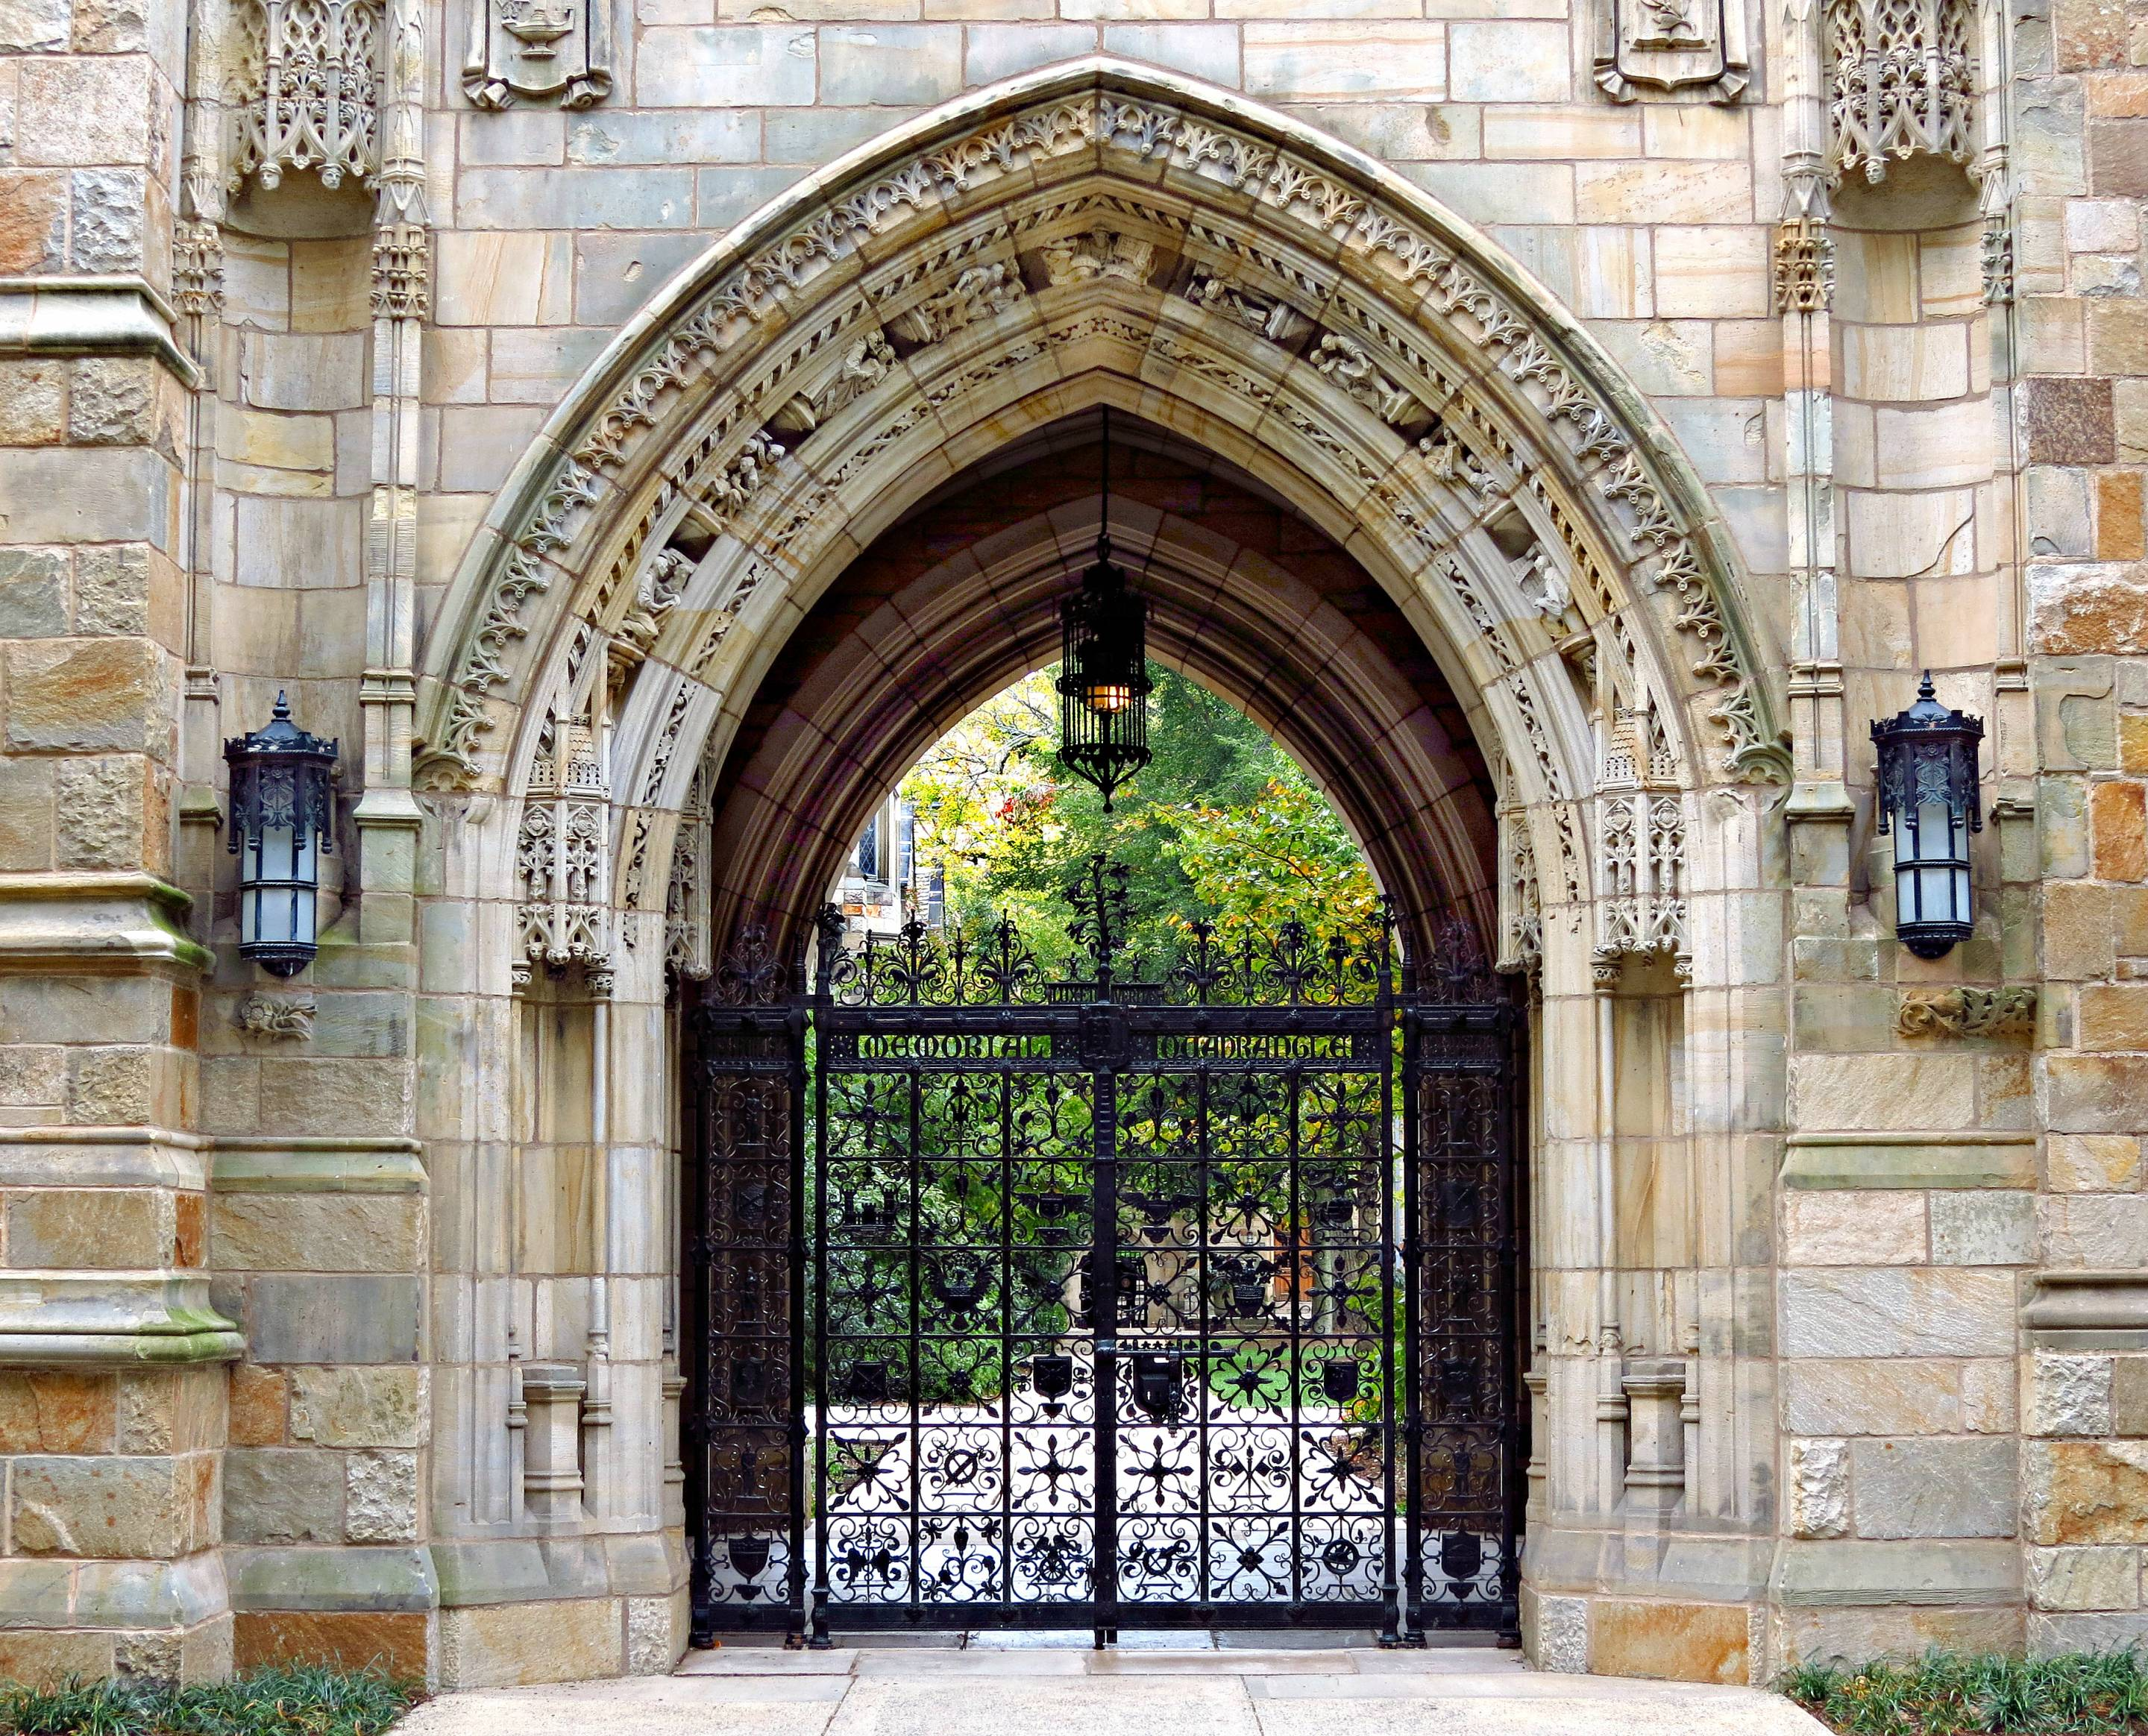 Harkness Gate to Memorial Quadrangle at Yale University in New Haven, Connecticut